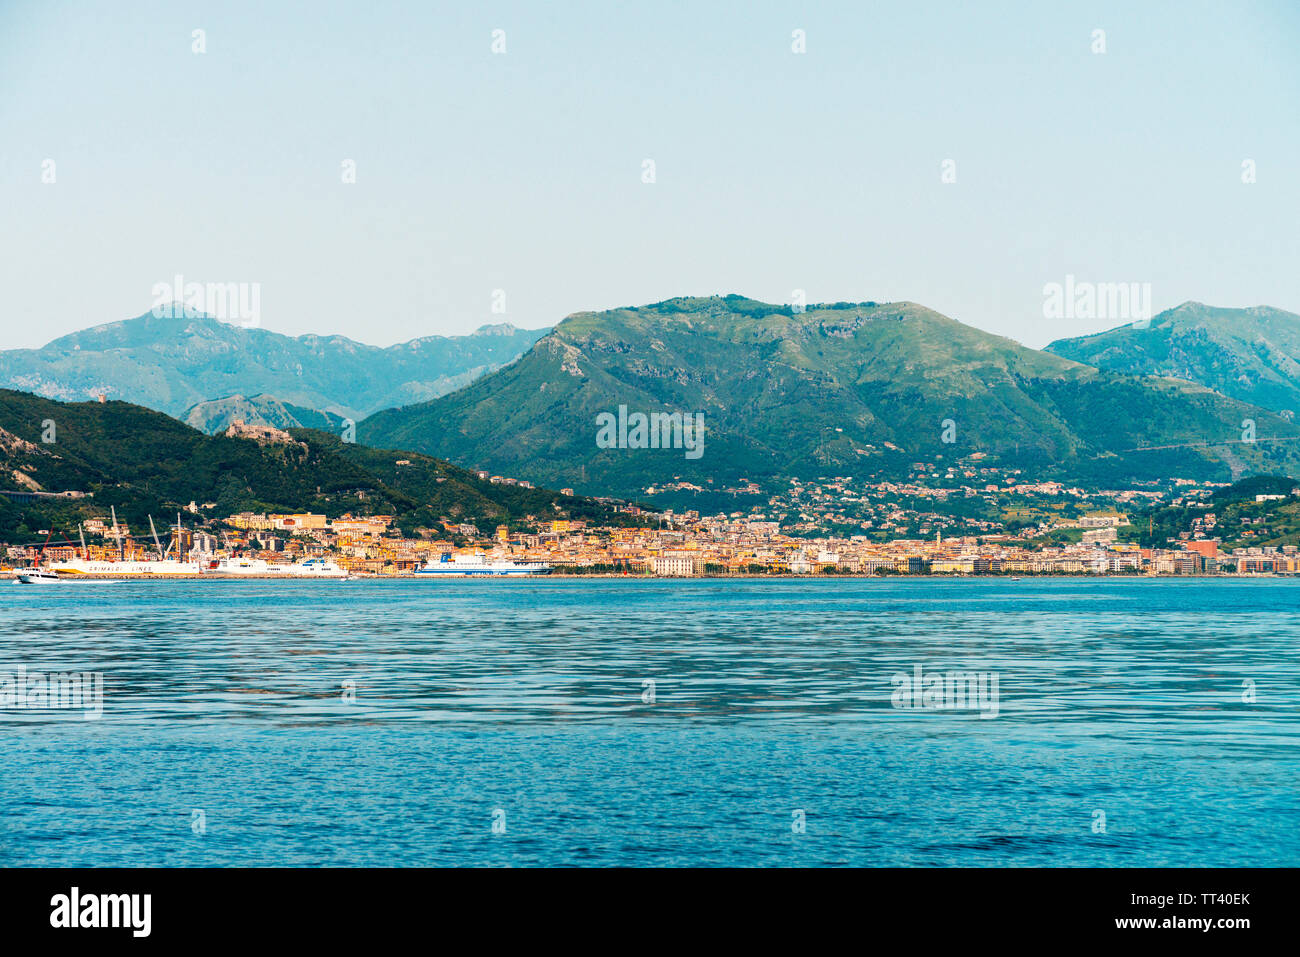 The city of Salerno, Italy, seen from the Gulf of Salerno Stock Photo